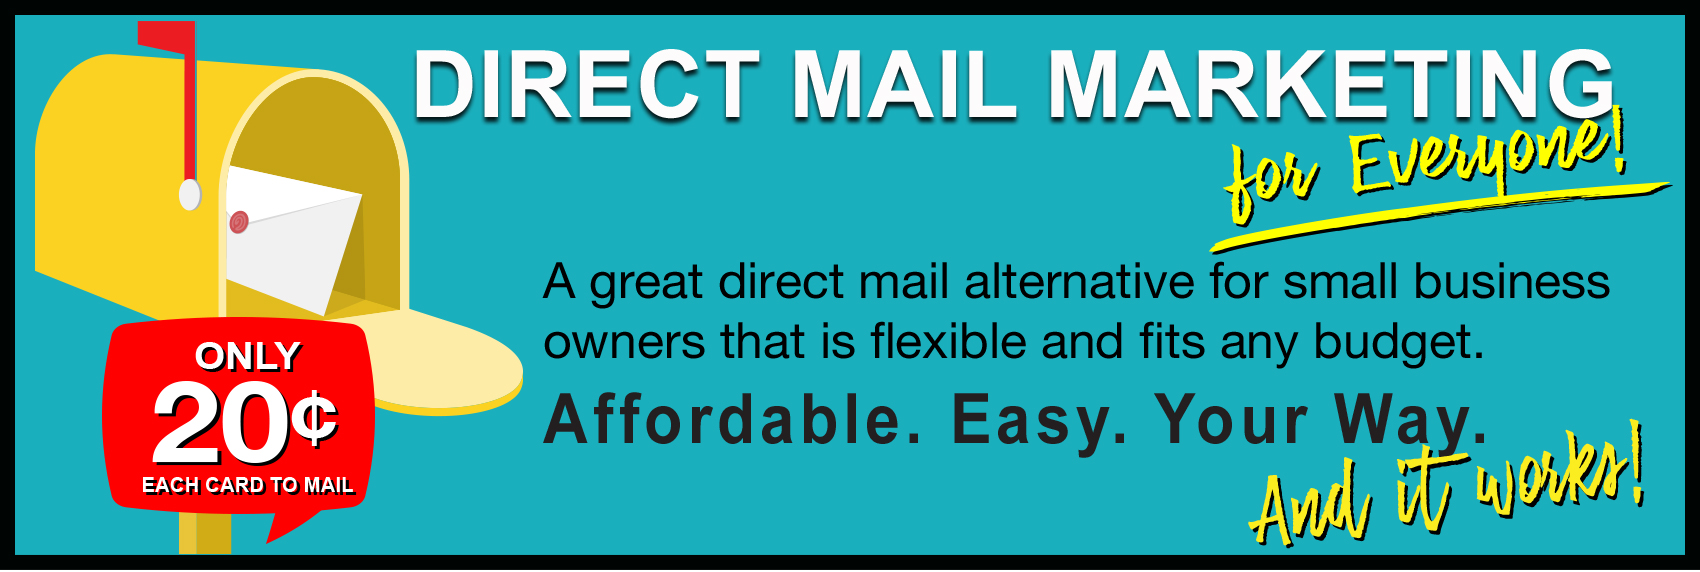 Direct Mail Marketing for Everyone!